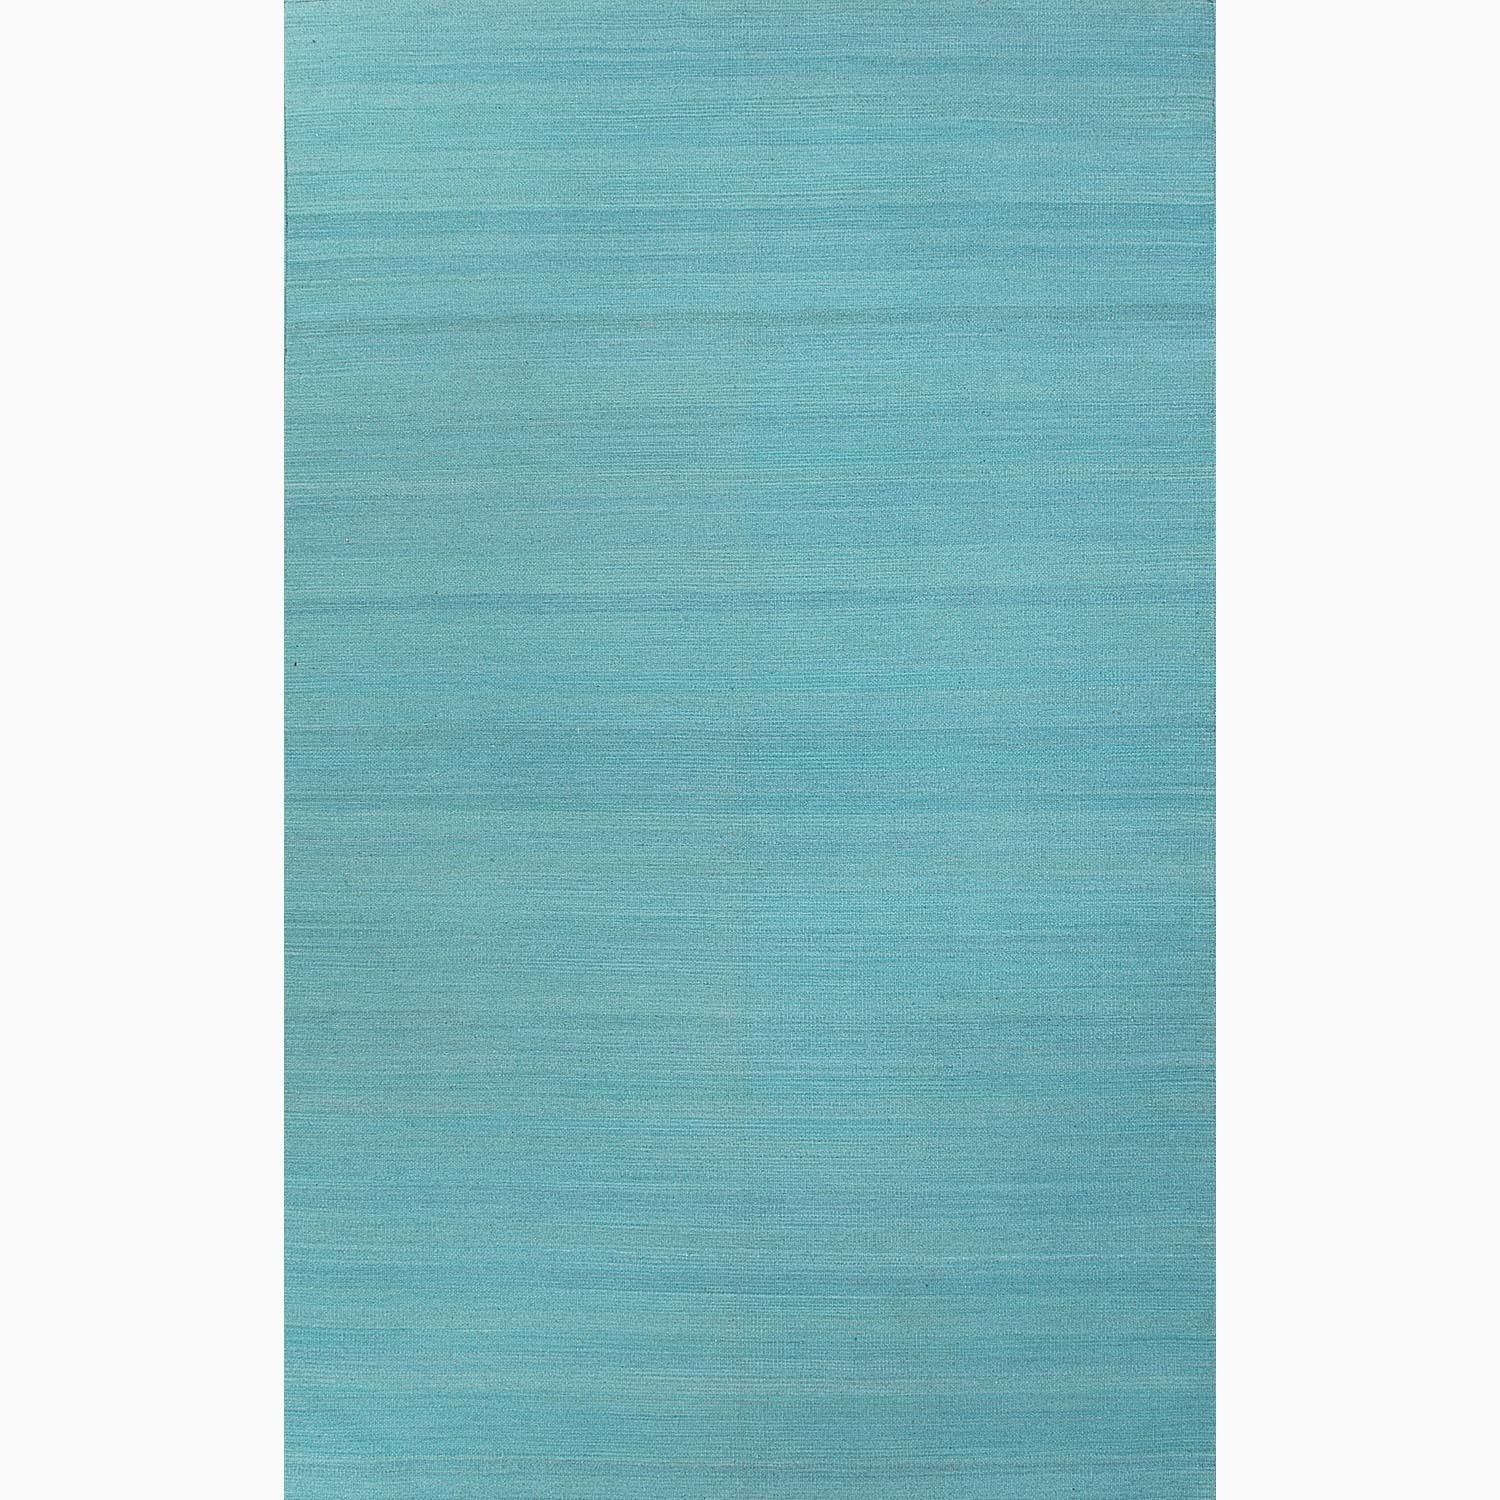 Who says solids have to be boring? With this rug, a myriad of rich, fashion-forward shade come to life underfoot. Crafted of a flat-woven wool blend, this reversible piece provide a beautiful splash o...